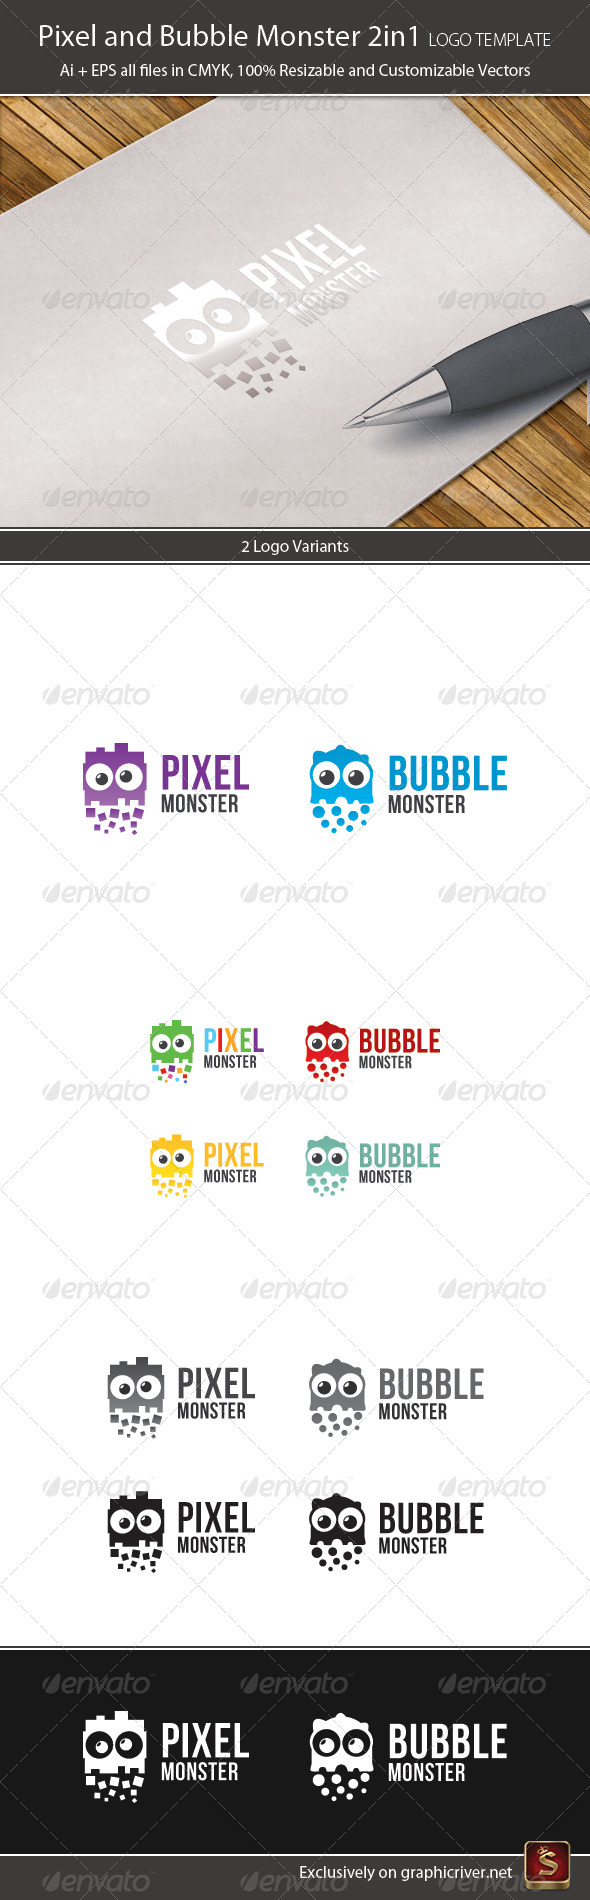 Pixel and Bubble Monster Logo Template 2in1 - Vector Abstract